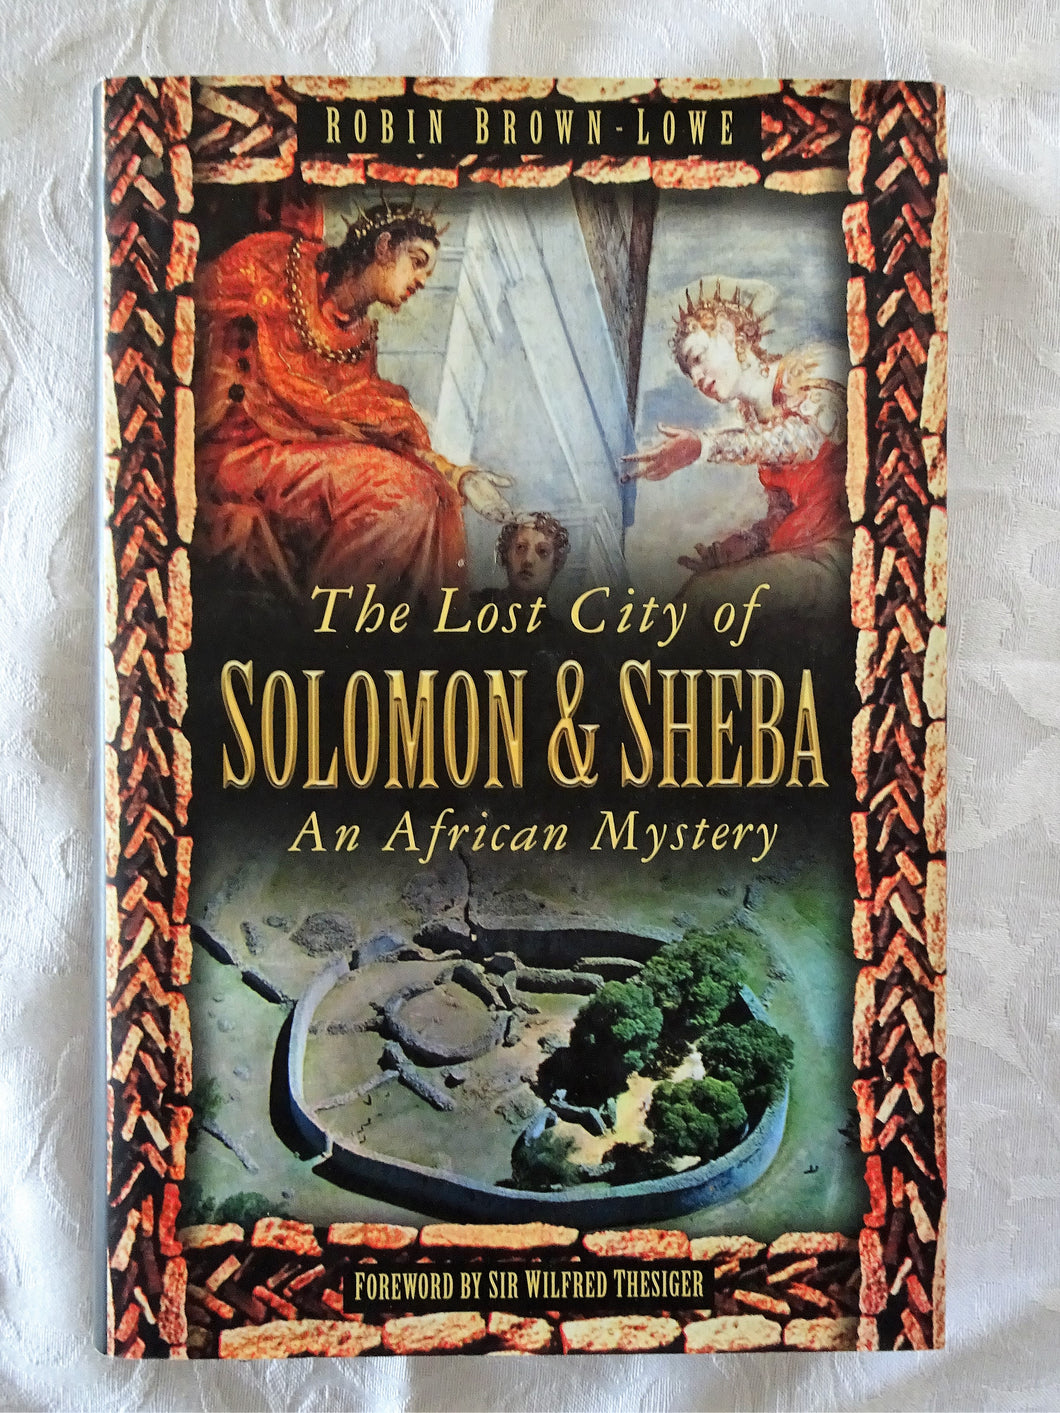 The Lost City of Solomon & Sheba by Robin Brown-Lowe